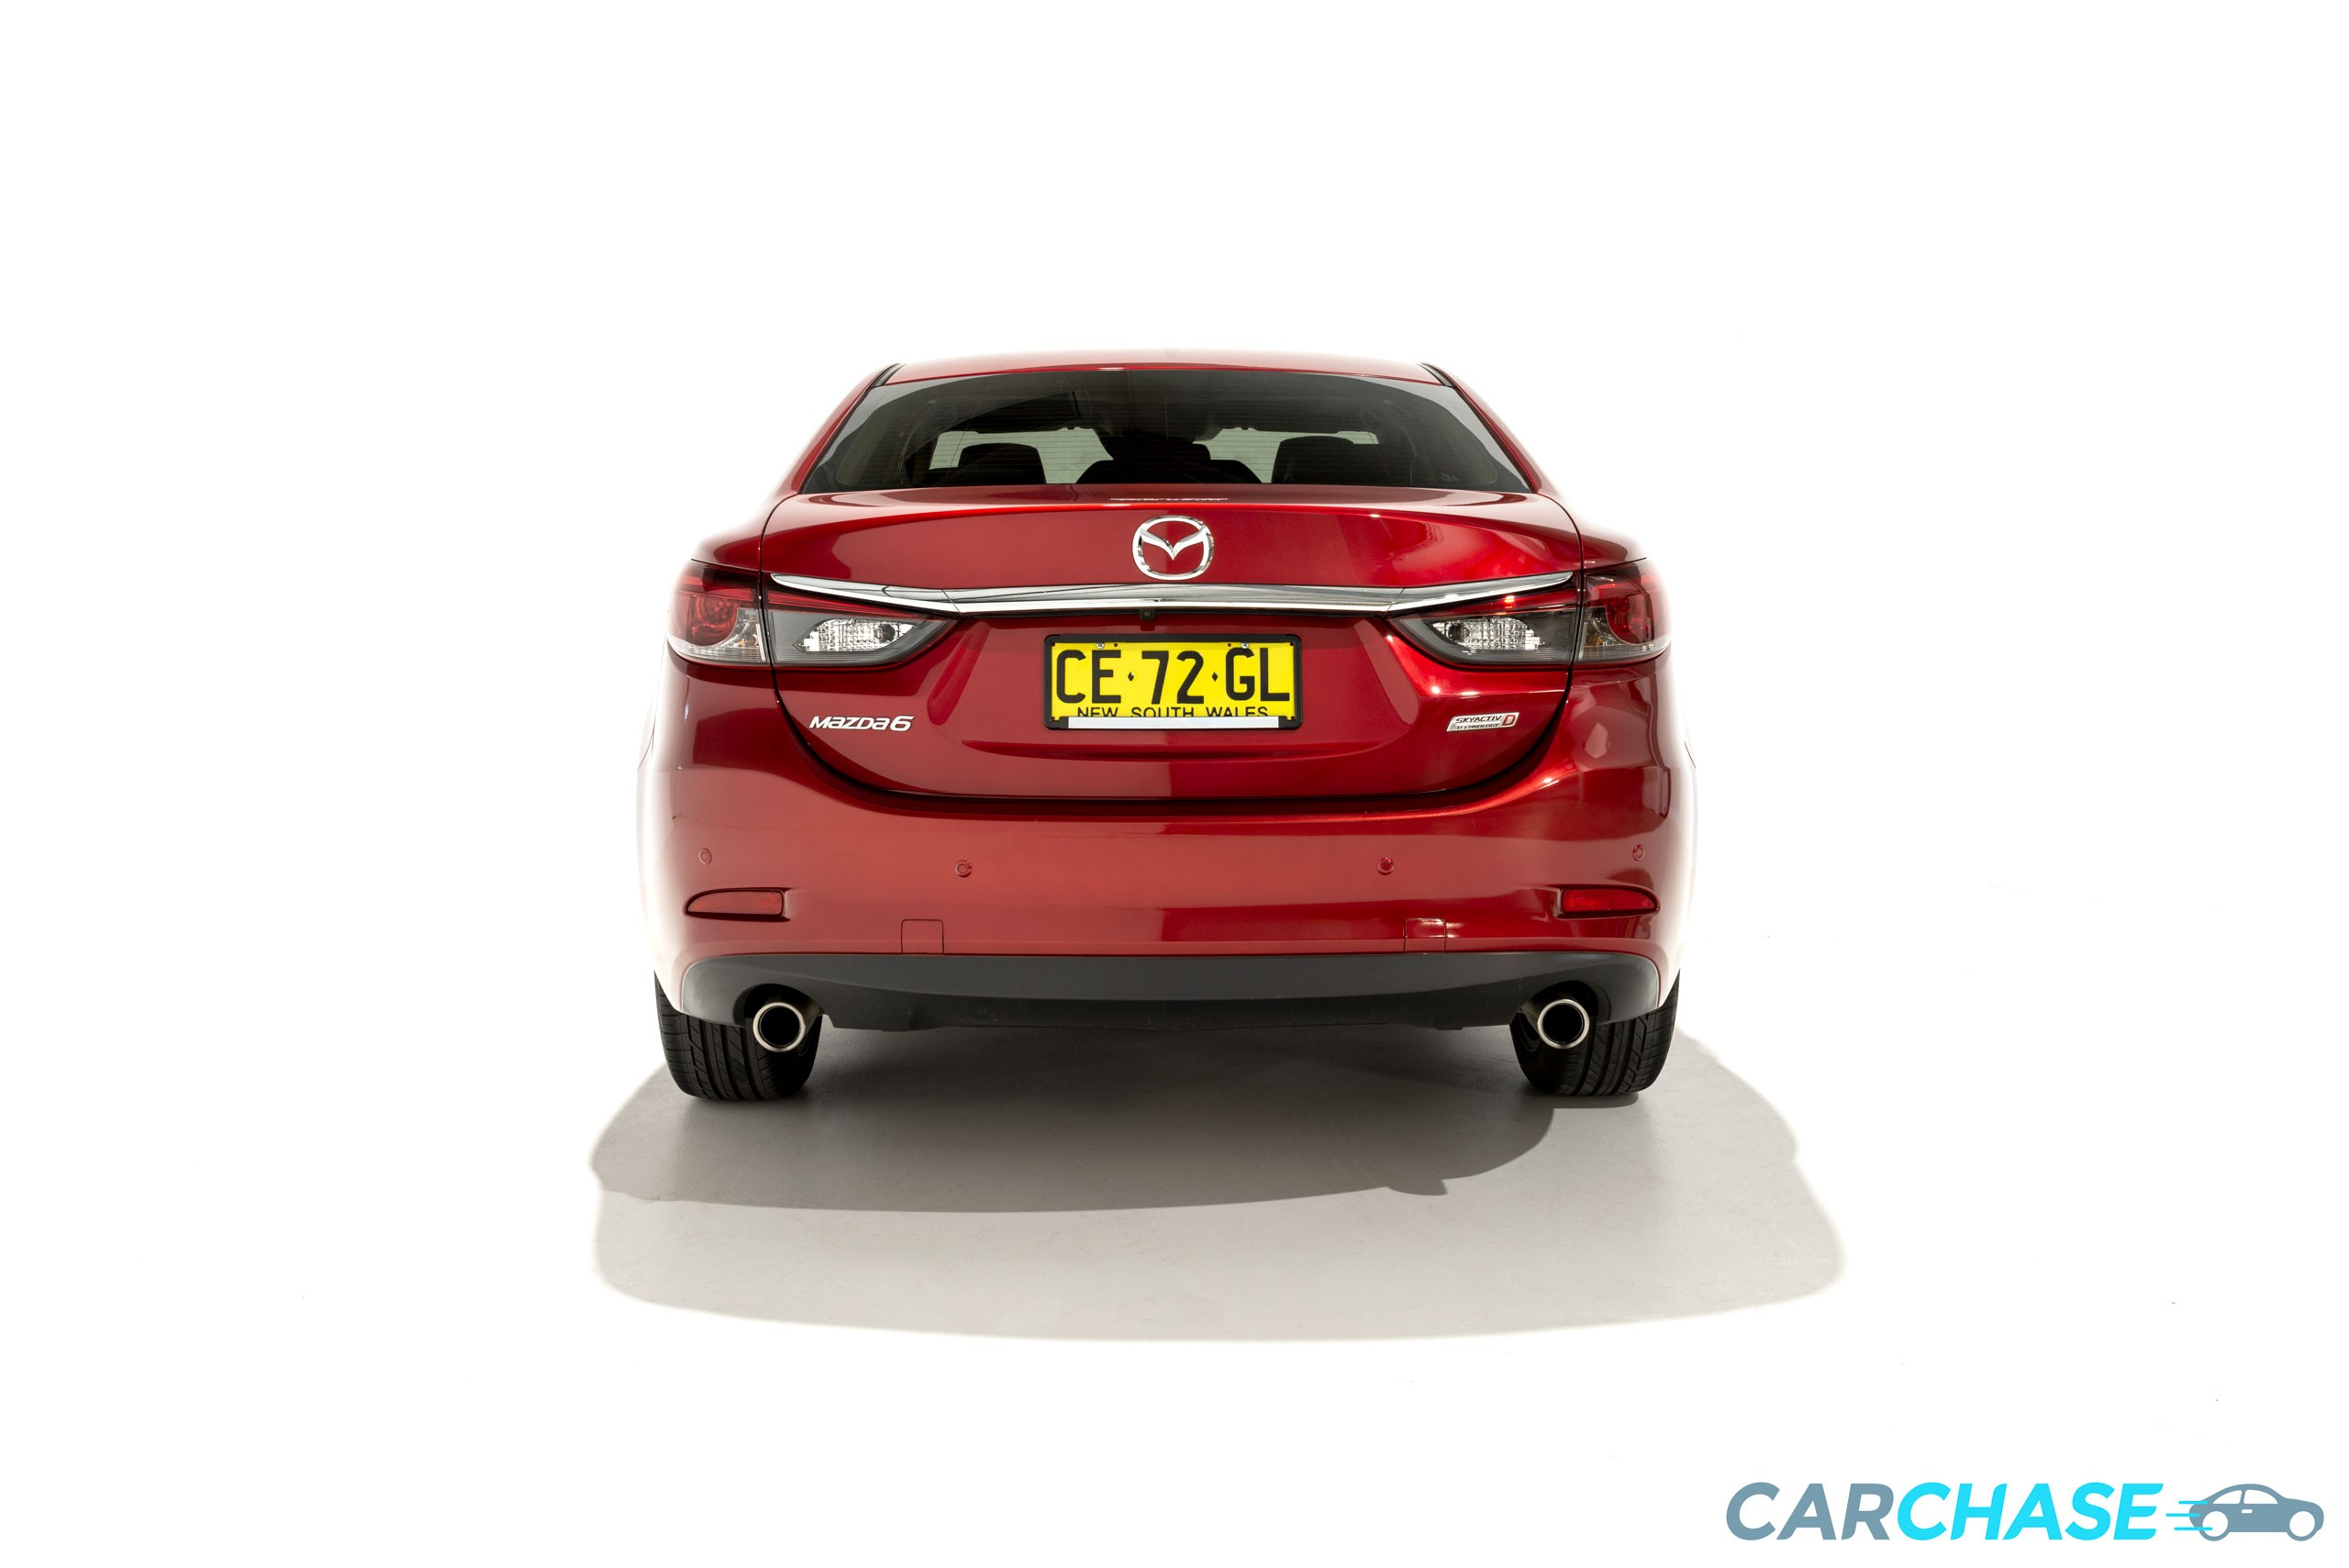 Image of rear profile of 2015 Mazda 6 Atenza